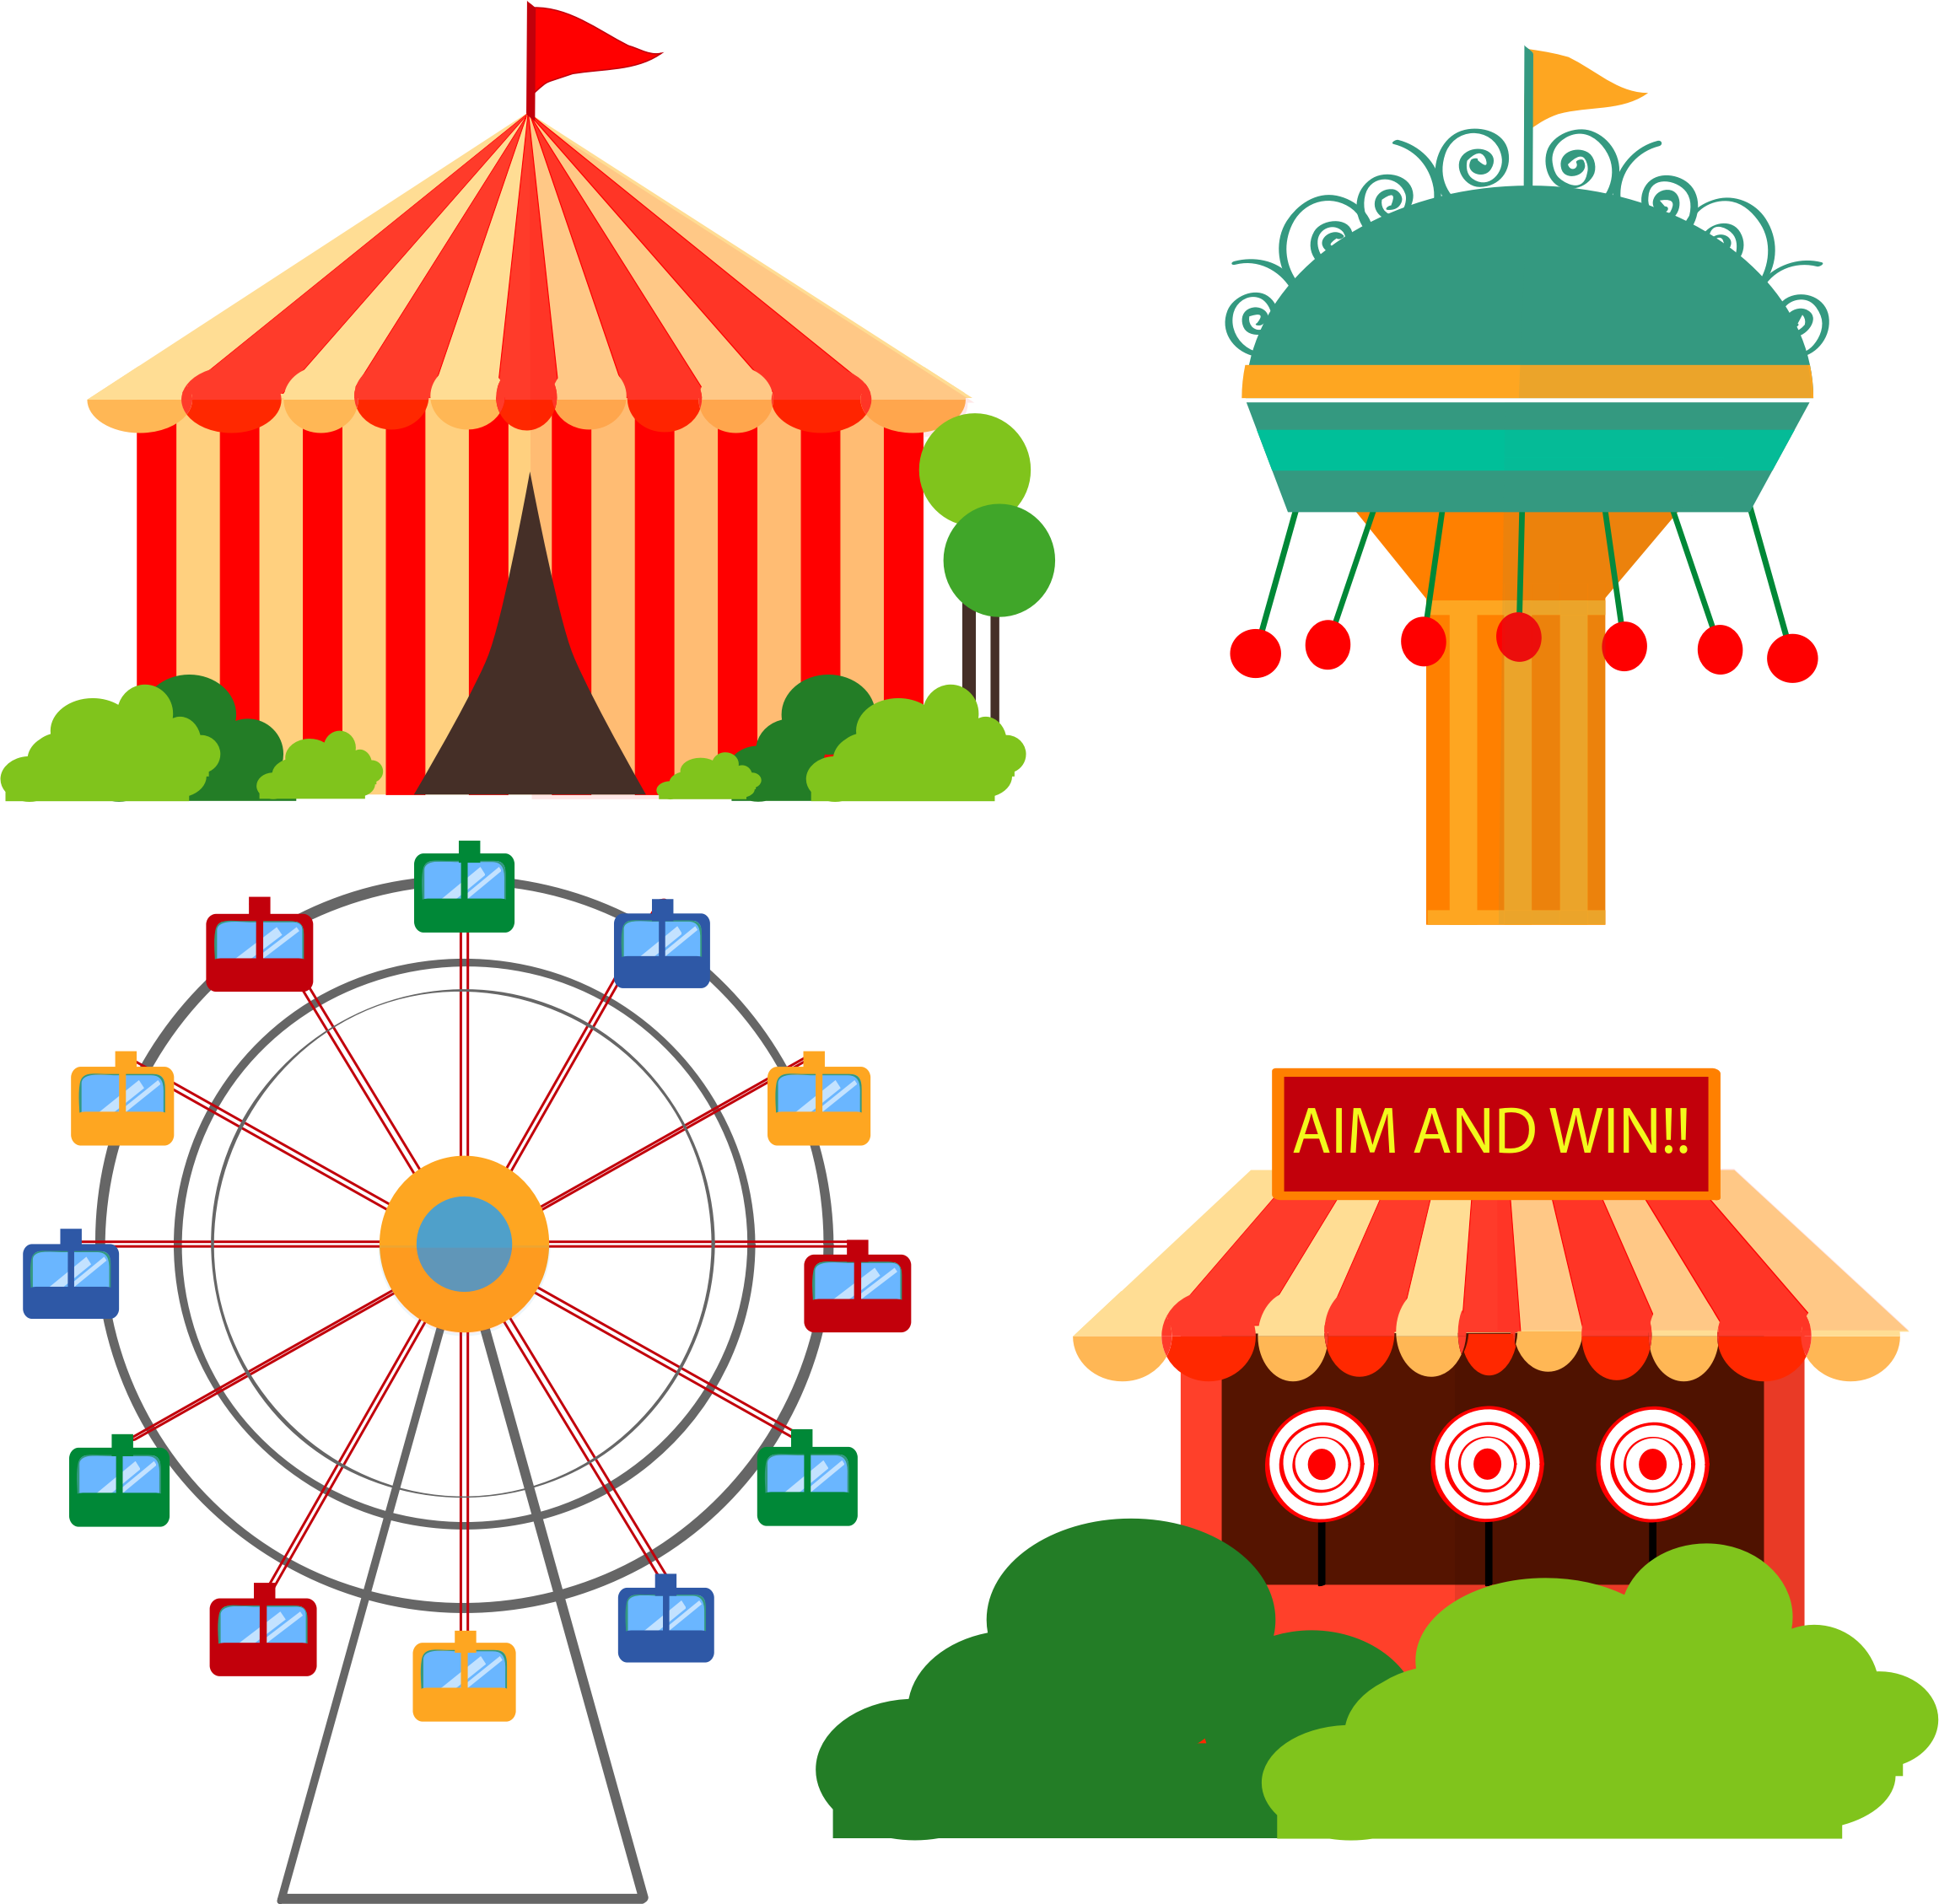 graphic free download Time by barbie a. Carousel clipart kids carnival games.